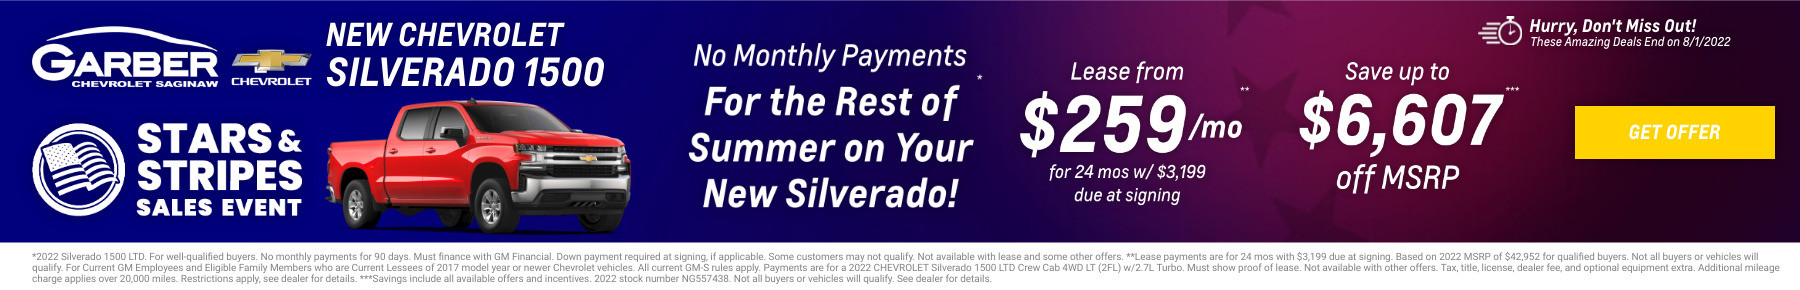 New Chevrolet Silverado Current Deals and Offers in Saginaw, MI